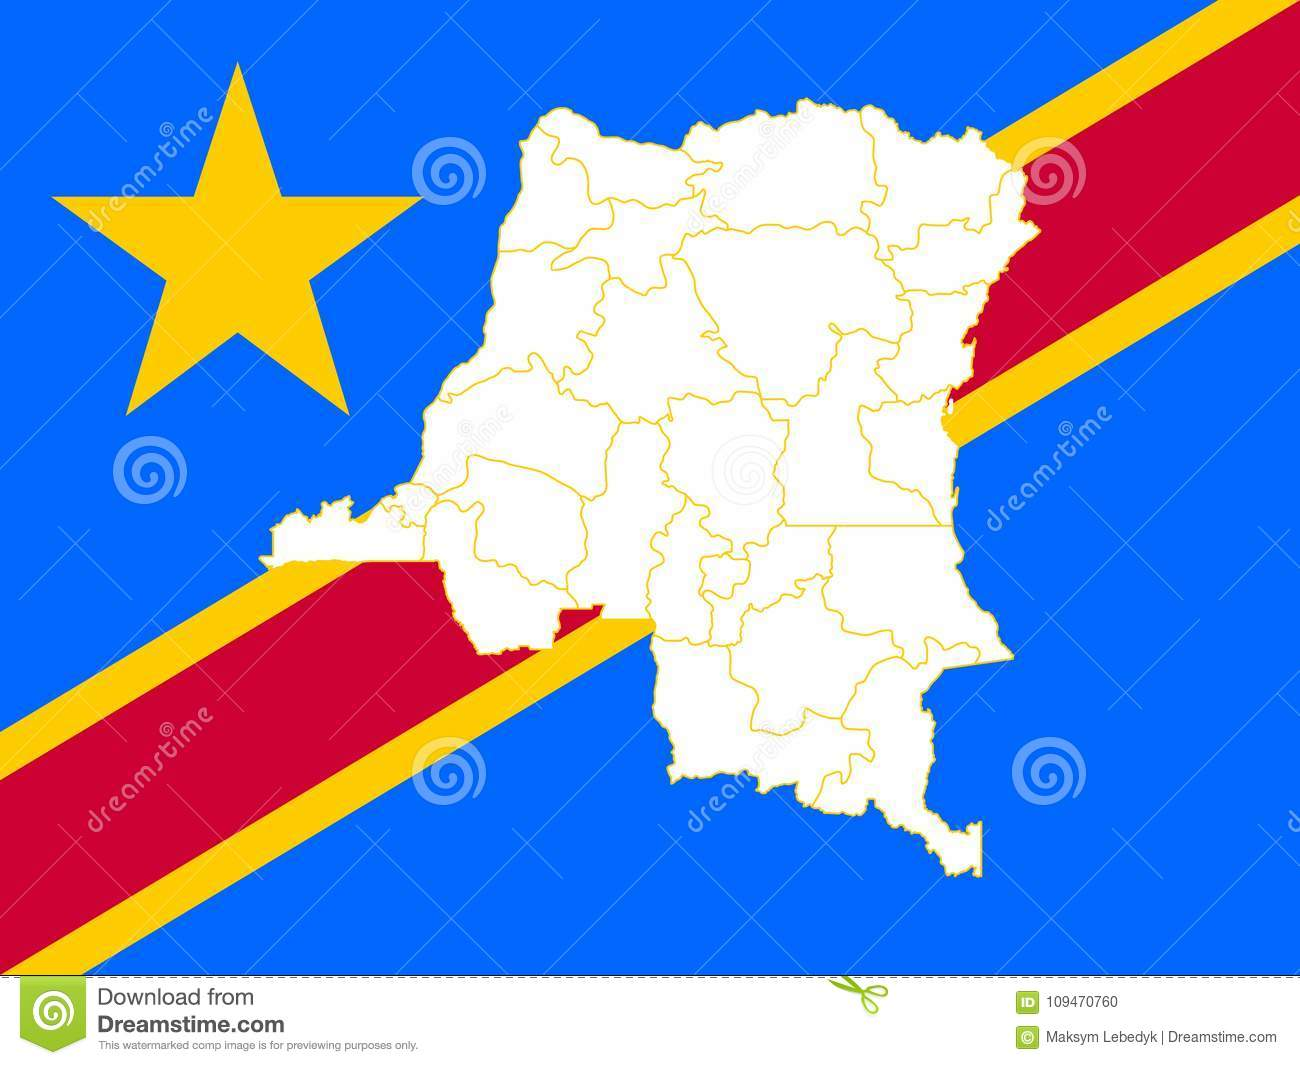 Picture of: Map And Flag Of Democratic Republic Of The Congo Stock Illustration Illustration Of Figure Icon 109470760